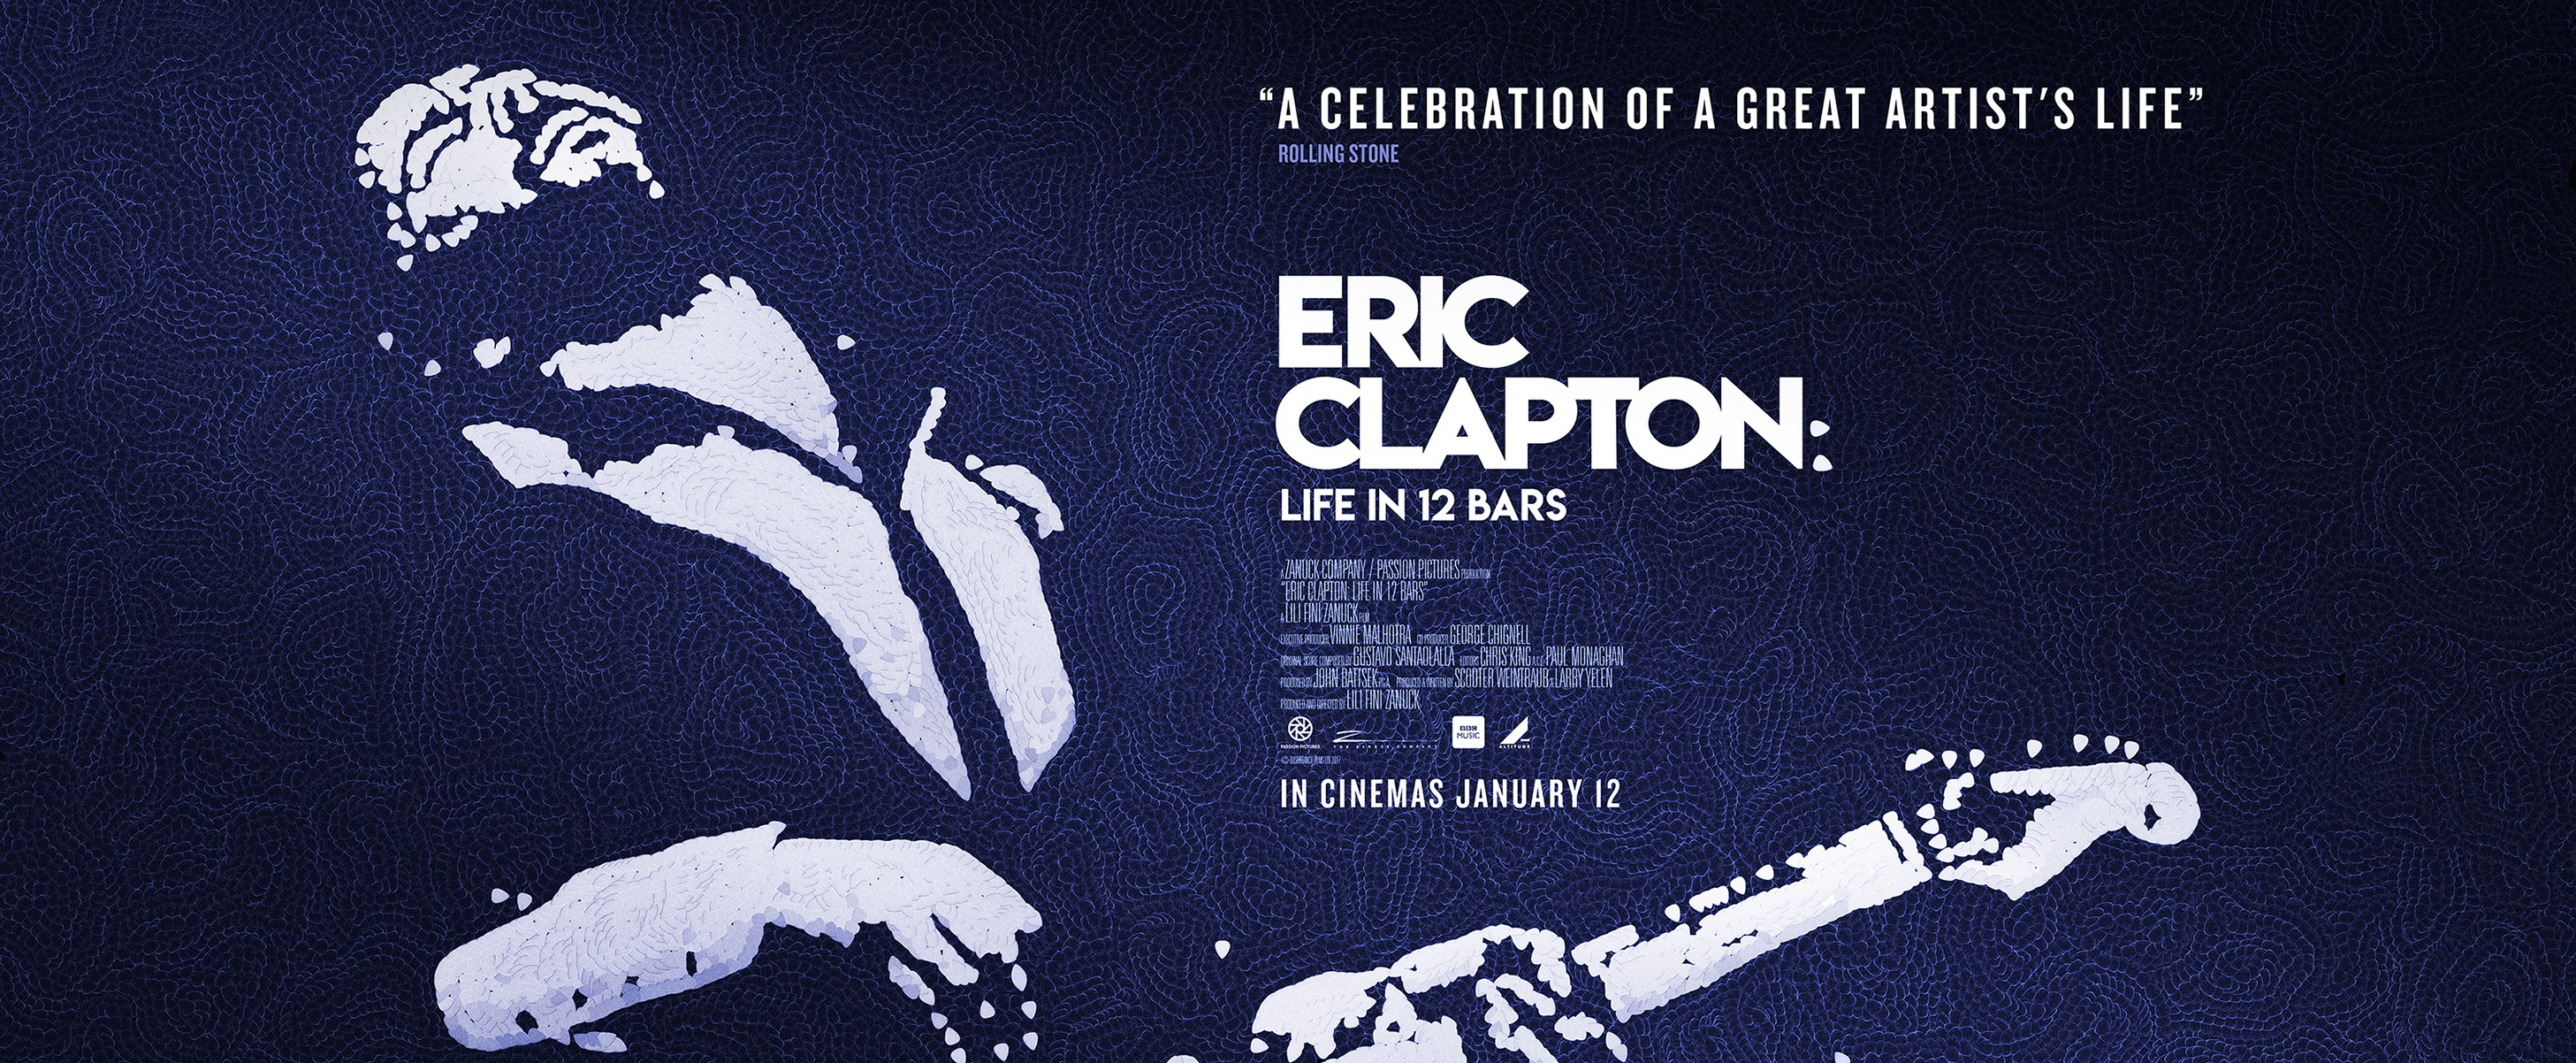 ERIC CLAPTON: LIFE IN 12 BARS trailer